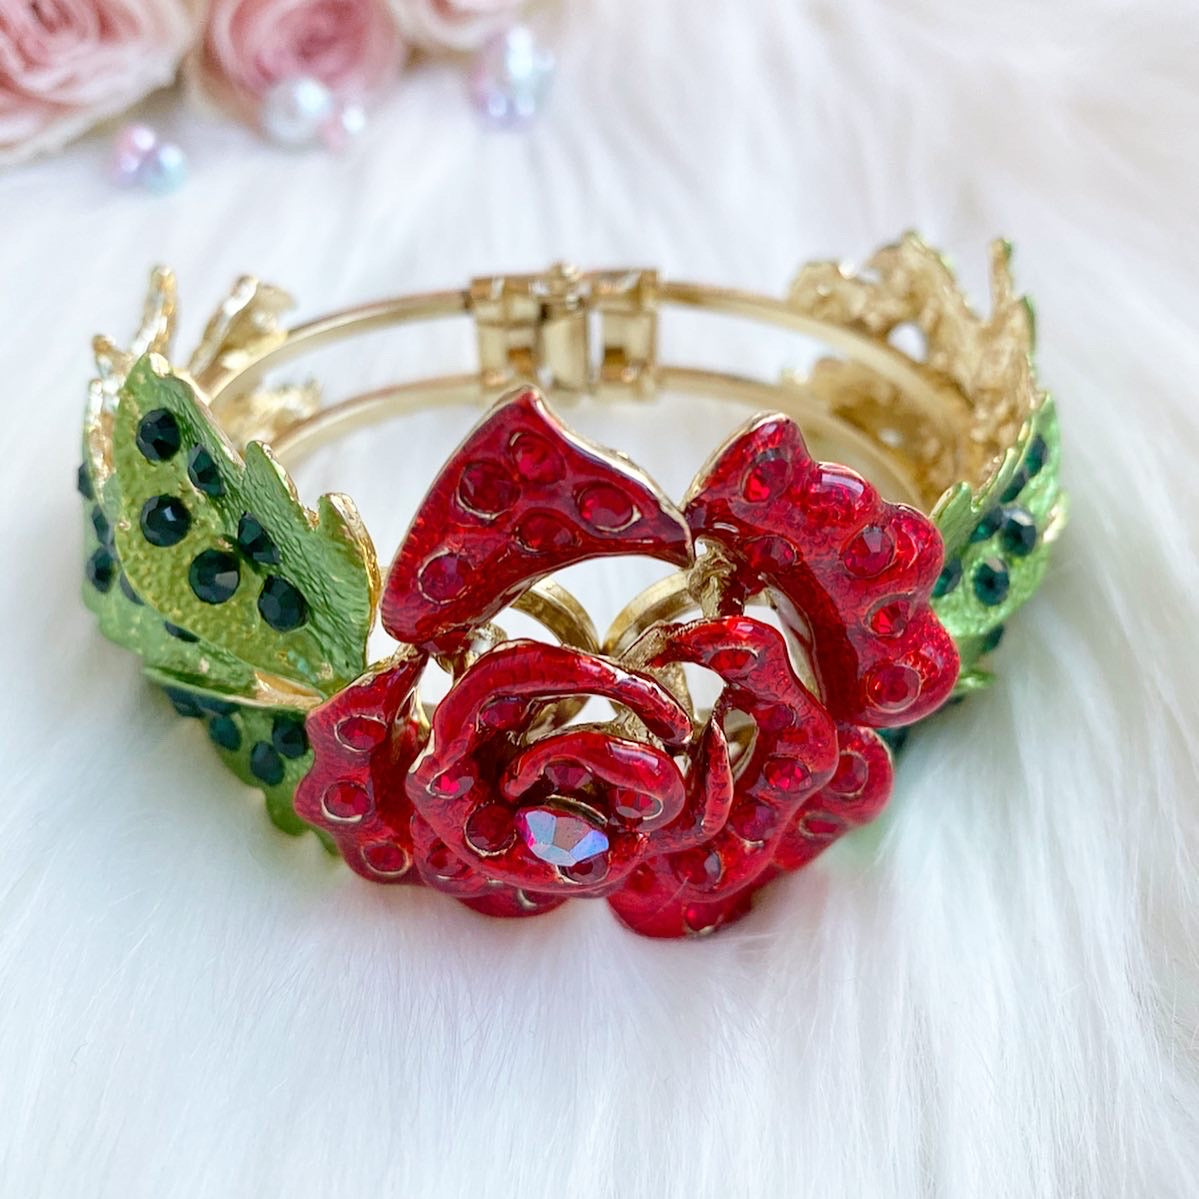 Beauty's Rose Bracelet